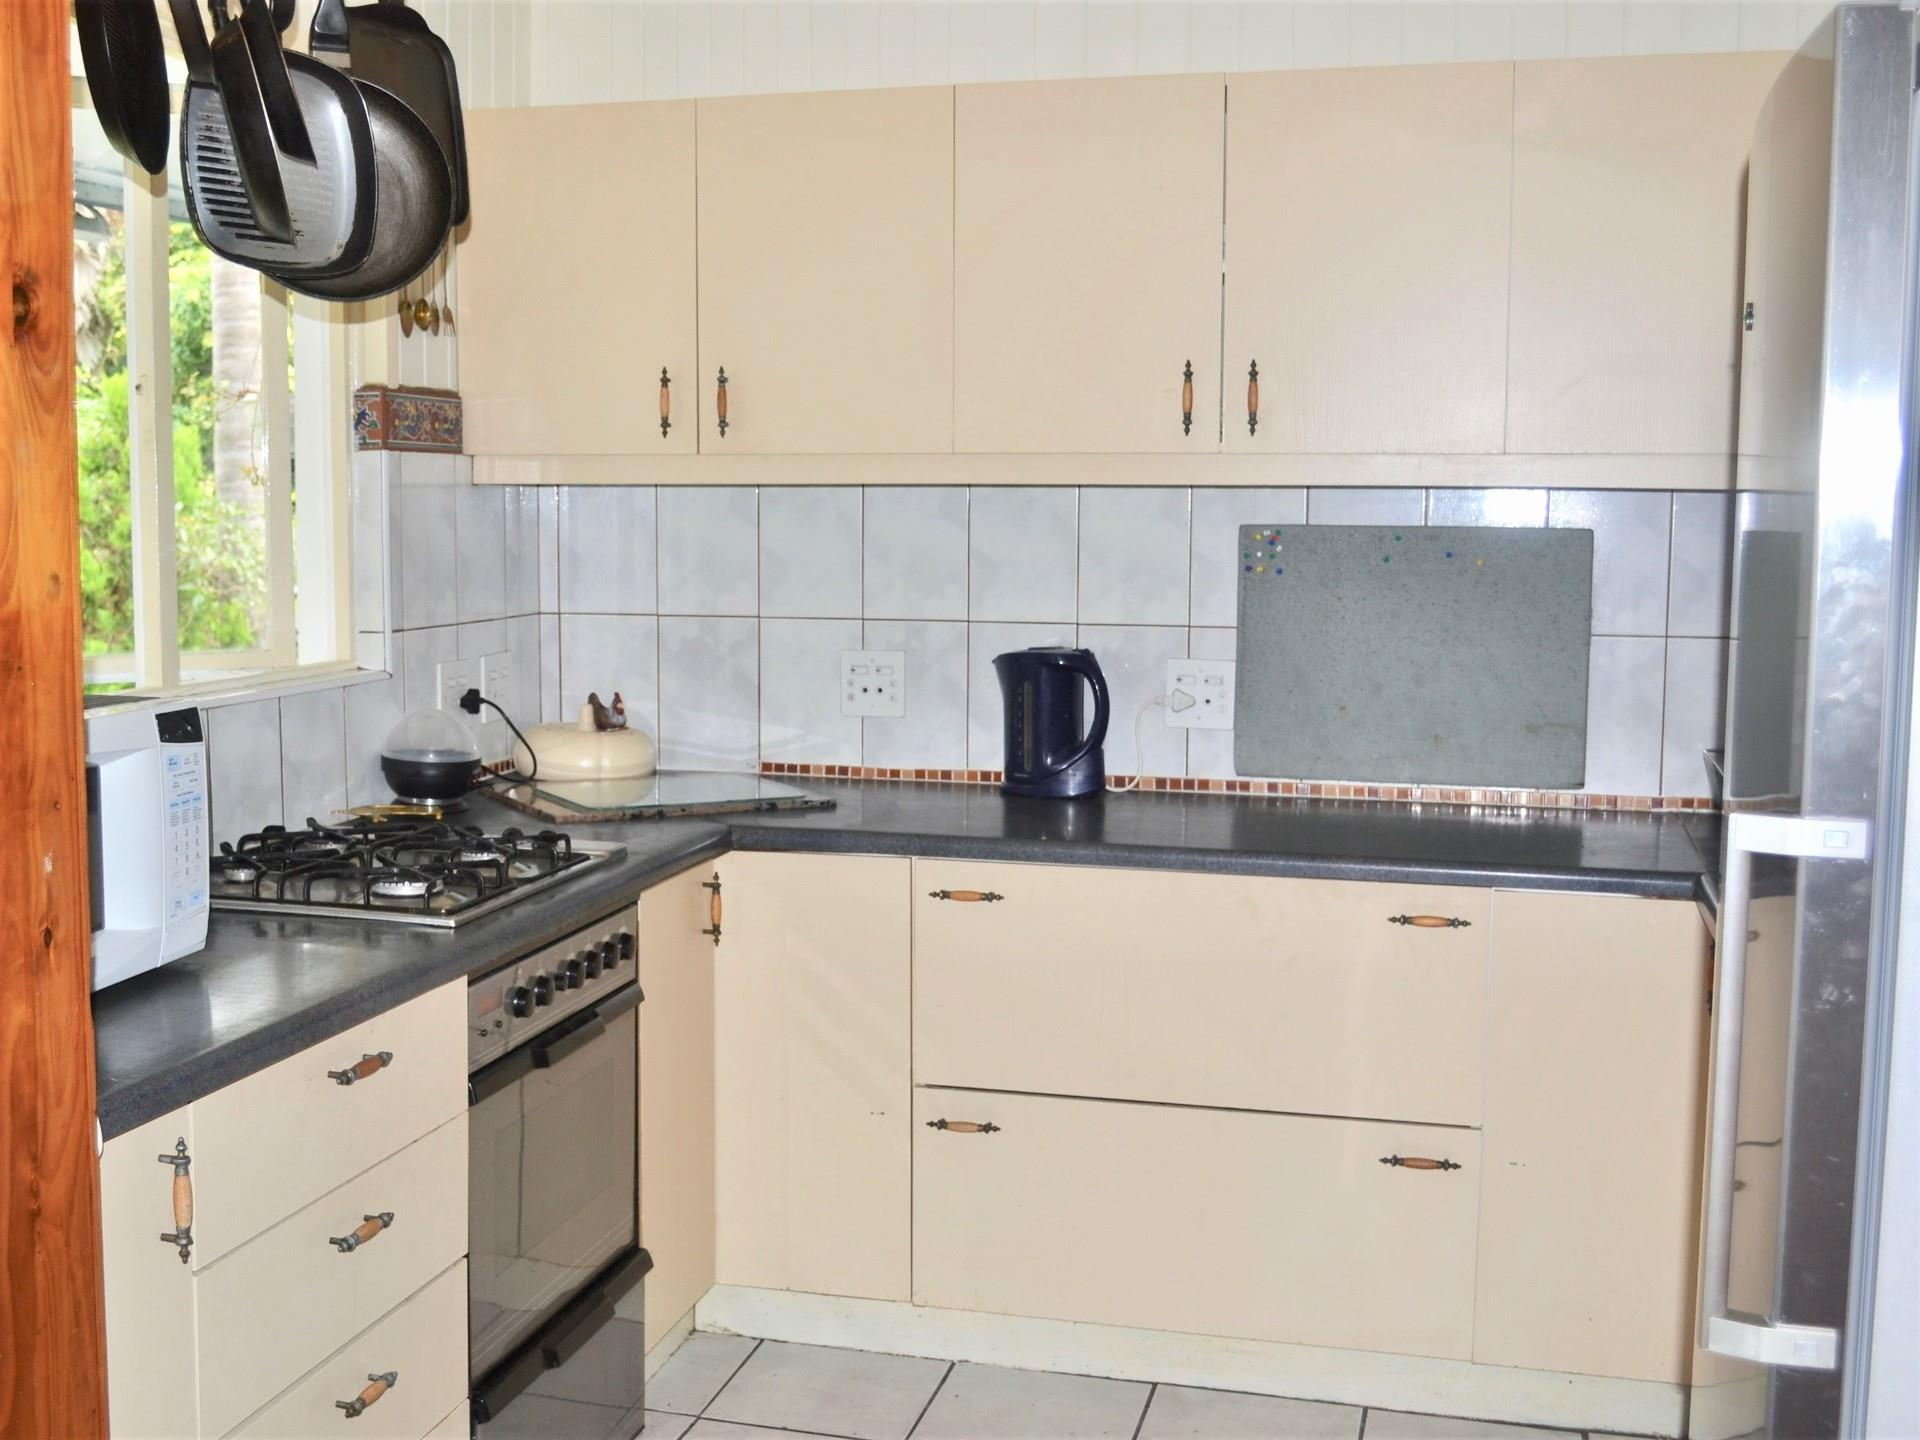 8 Bedroom House For Sale in Old Place